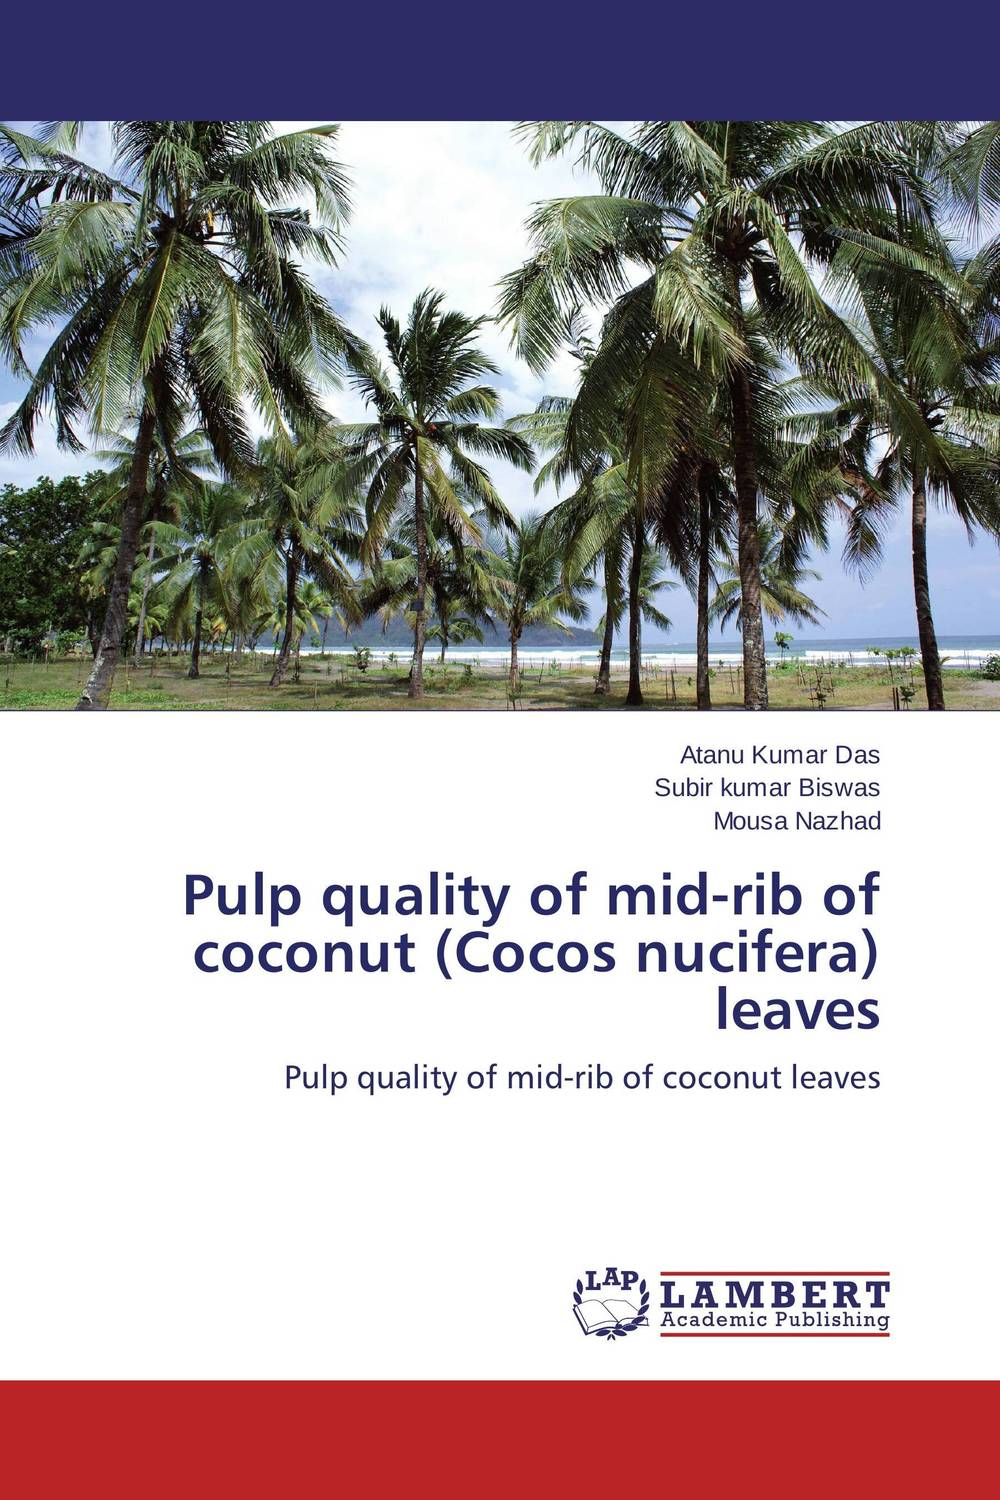 Pulp quality of mid-rib of coconut (Cocos nucifera) leaves adding value to the citrus pulp by enzyme biotechnology production